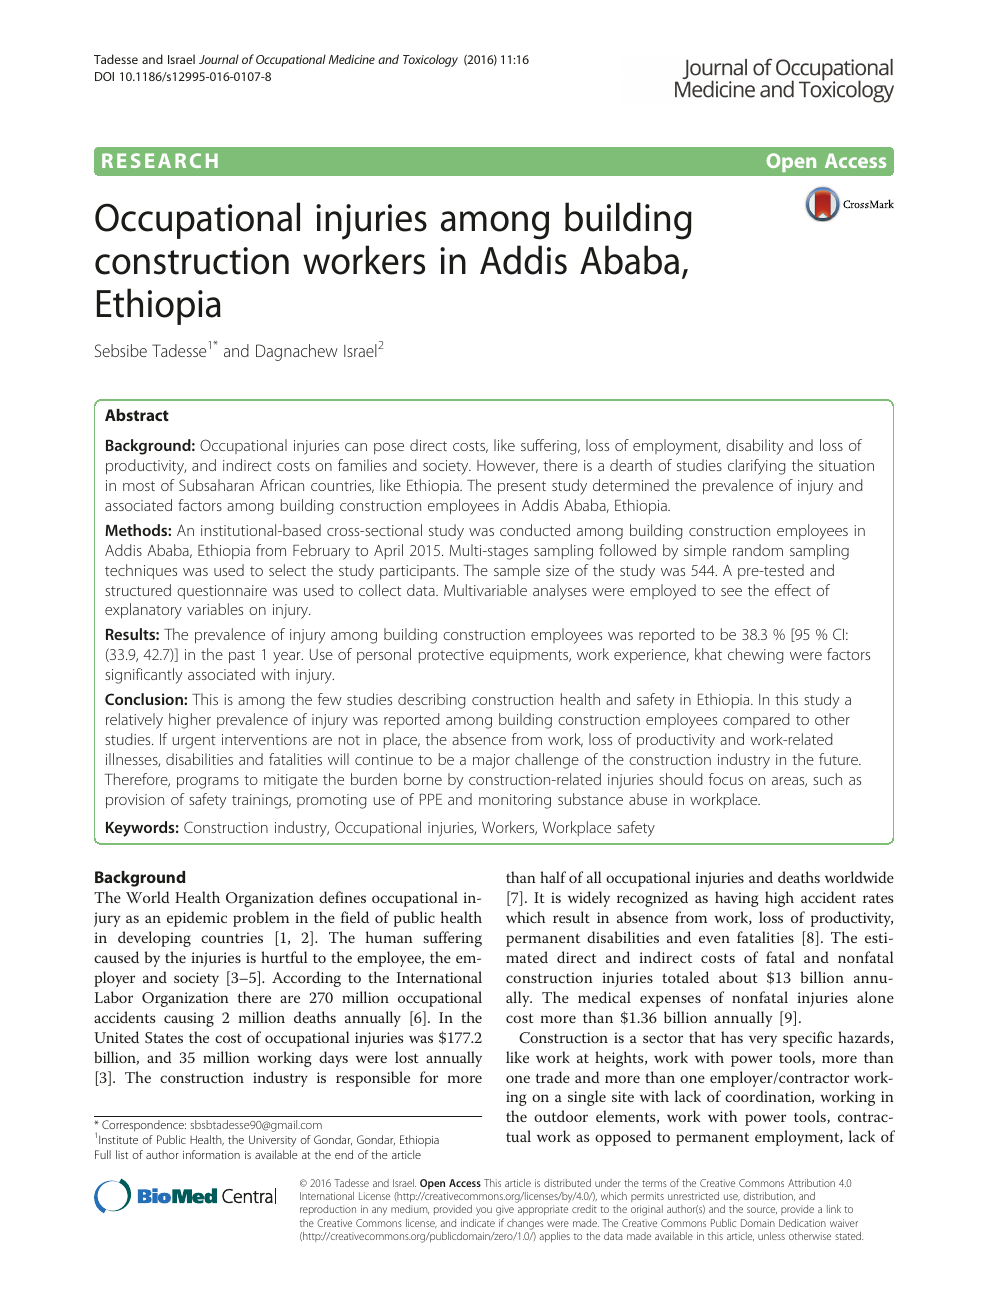 Occupational injuries among building construction workers in